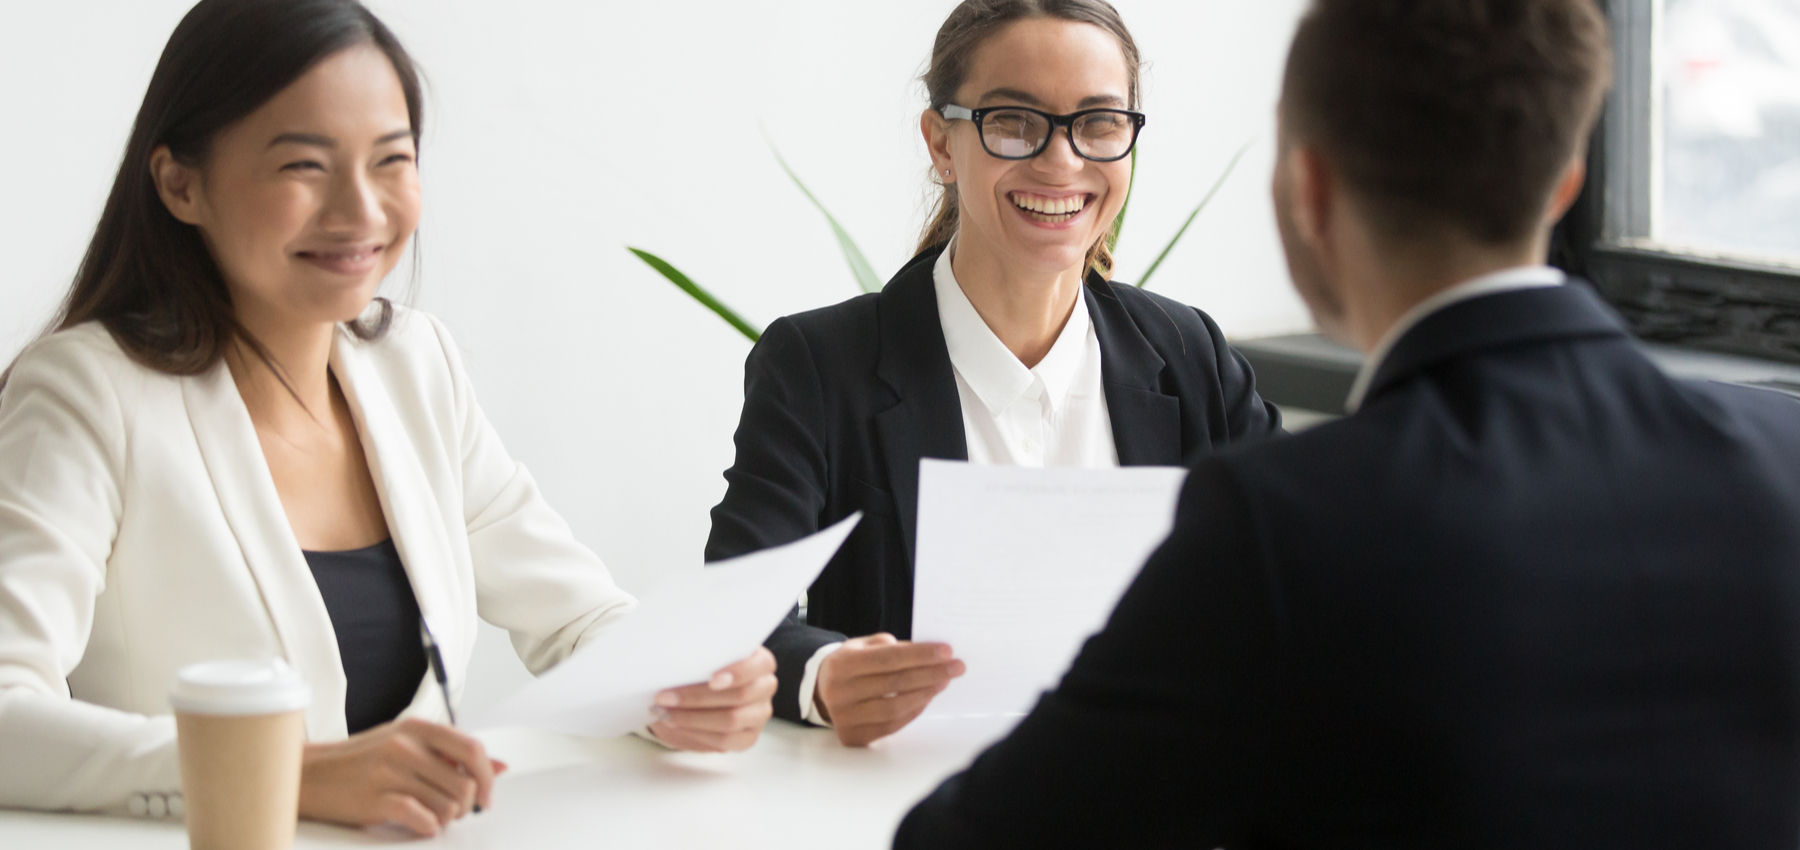 10 Common Job Interview Question Amp How To Answer Them